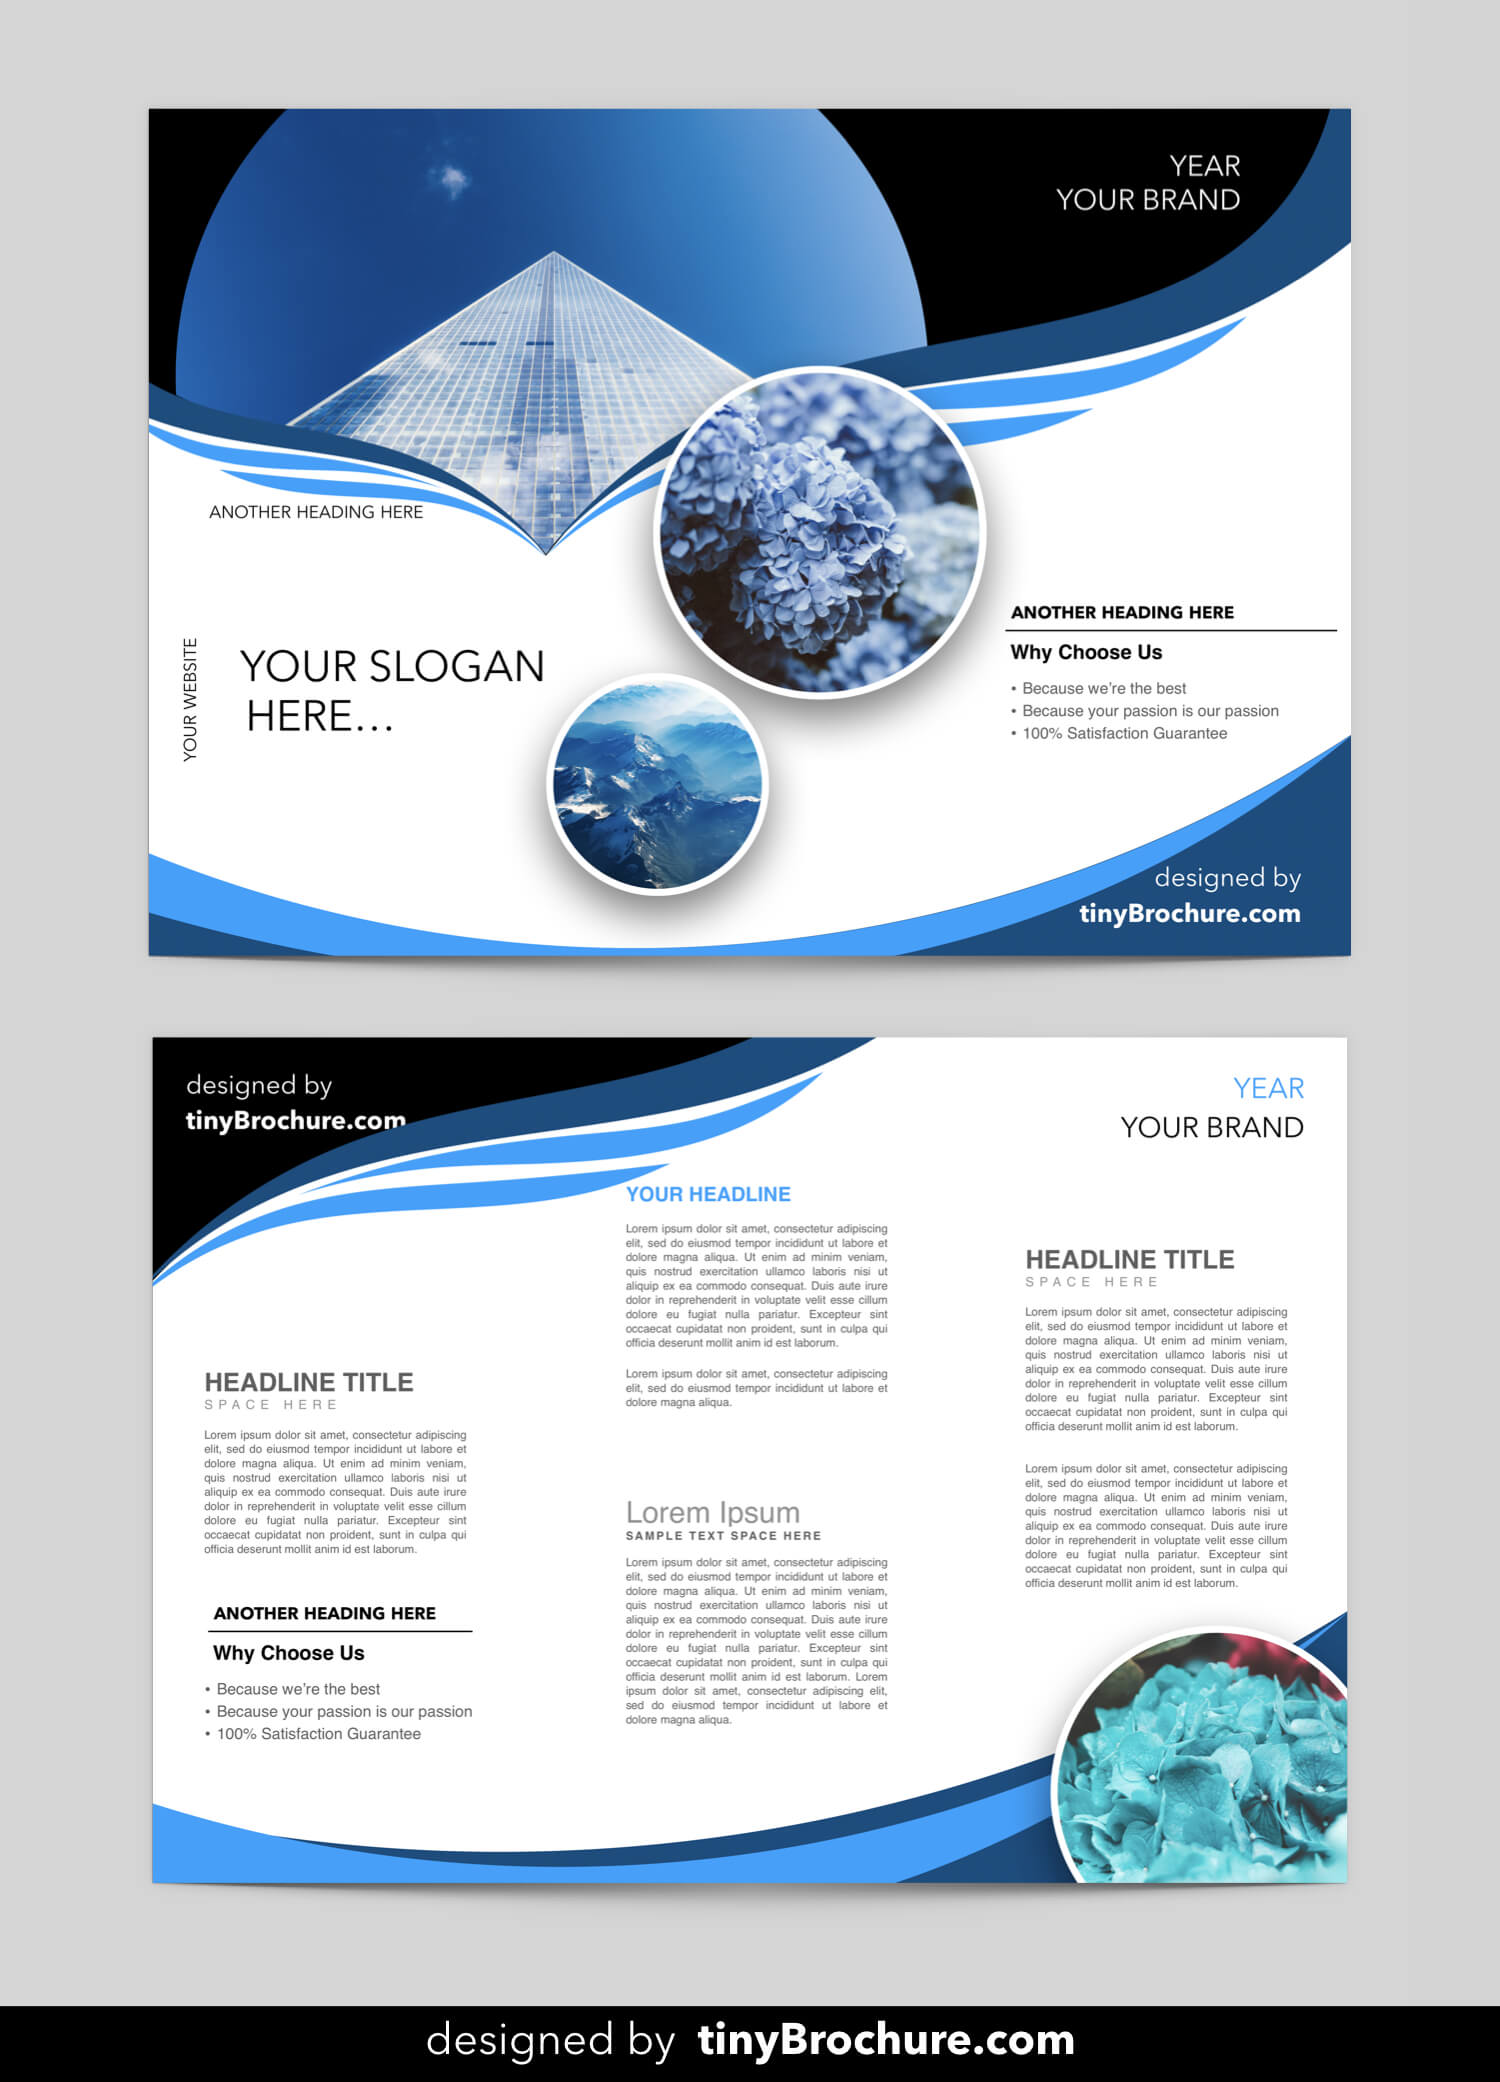 Editable Brochure Template Word Free Download | Word With Brochure Templates For Word 2007